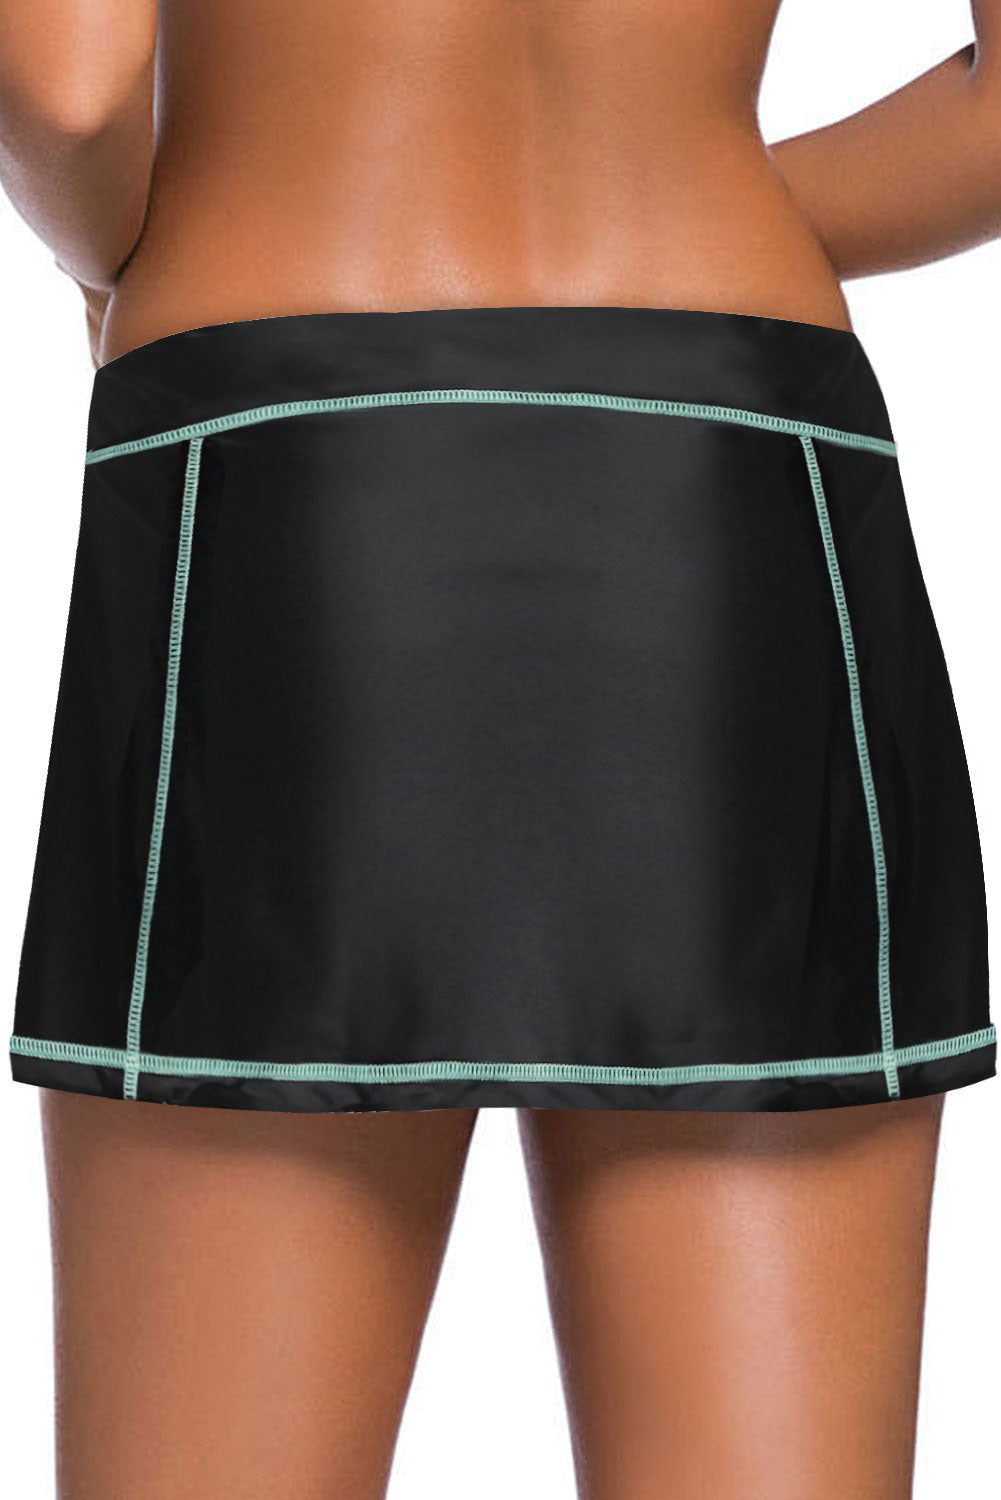 Mint Blue Stitch Trim Black Swim Skirt Bottom